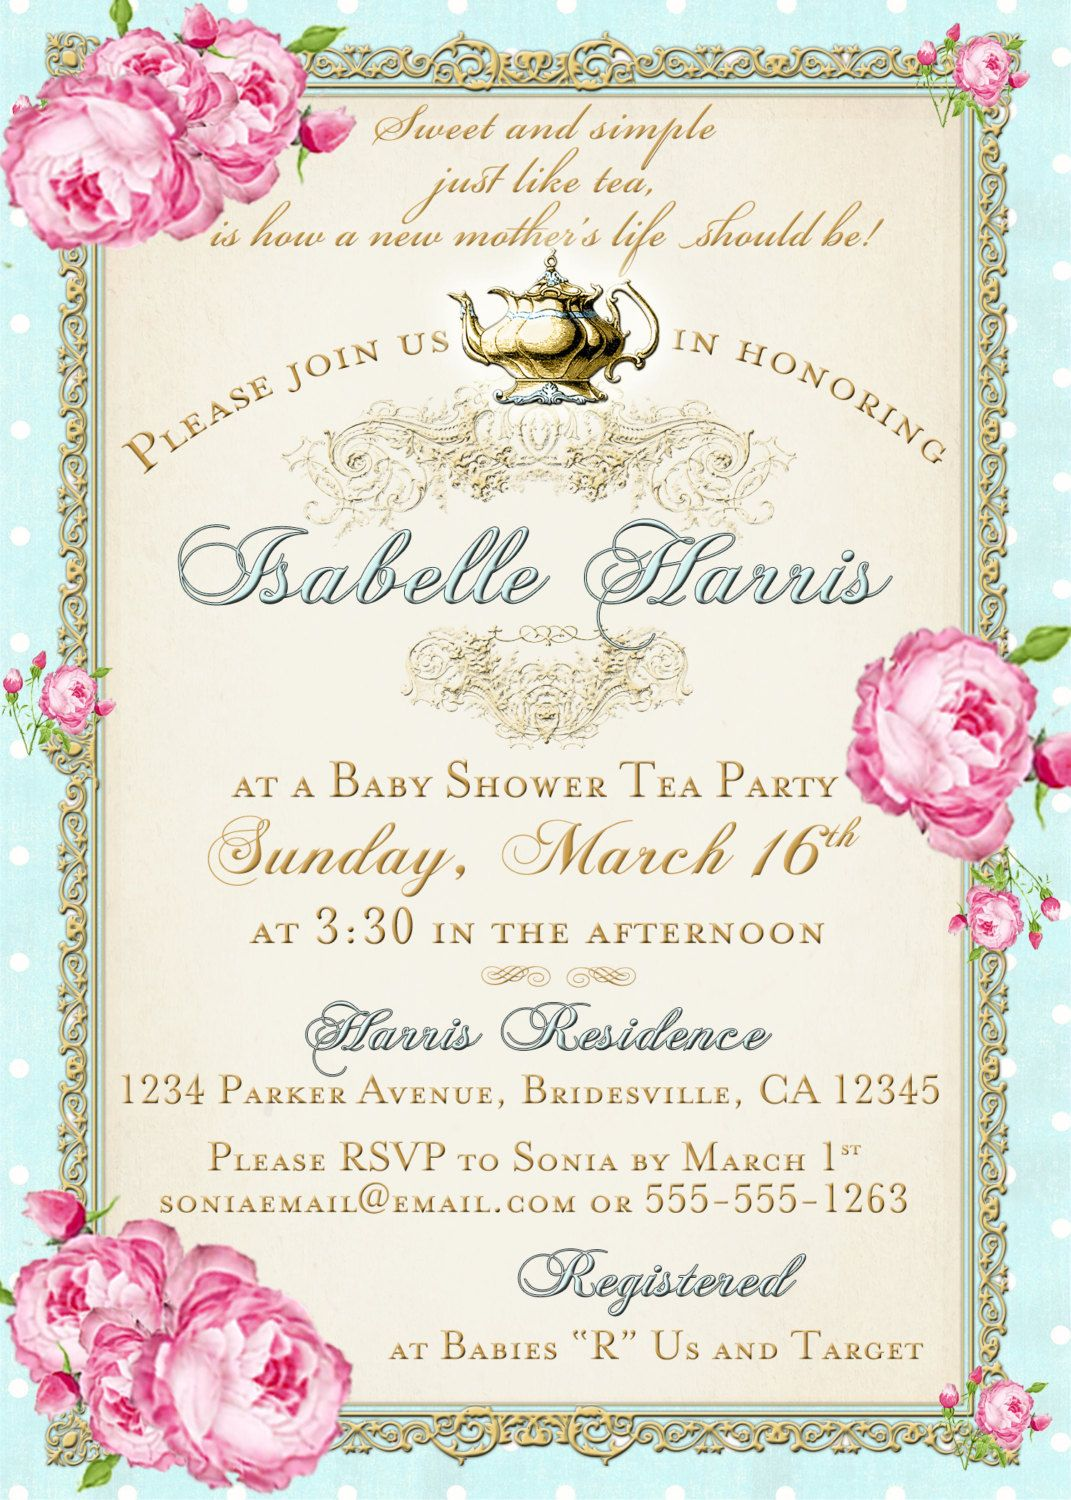 Tea party baby shower tea party invitation floral by jjmcbean tea party baby shower tea party invitation floral by jjmcbean filmwisefo